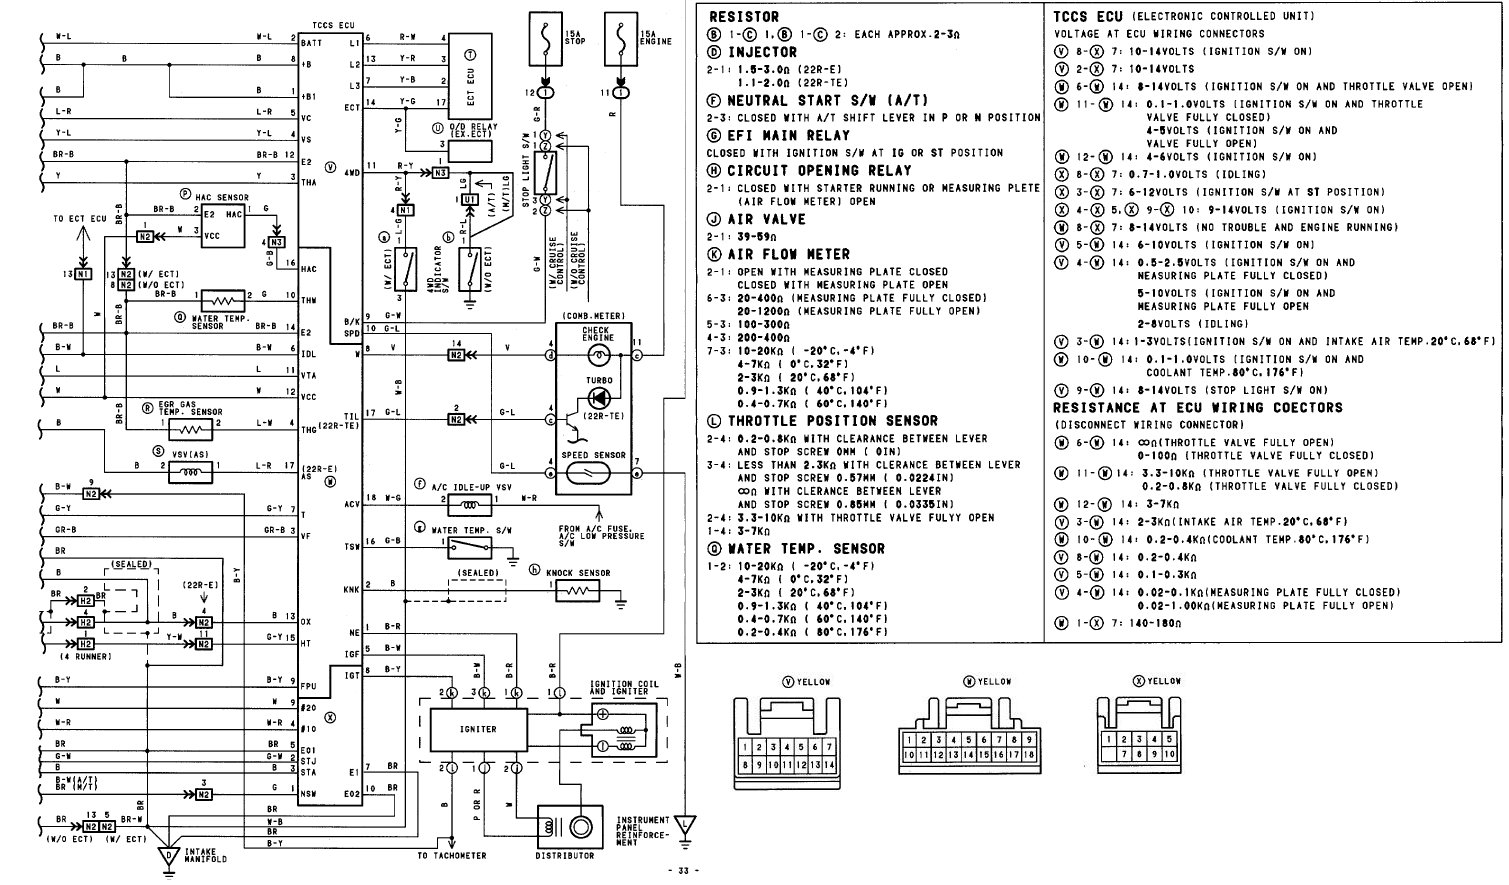 toyota 4runner wiring diagram jHkLHrj 1985 toyota celica wiring diagram 1985 ford capri wiring diagram 2002 4runner wiring diagram at bayanpartner.co